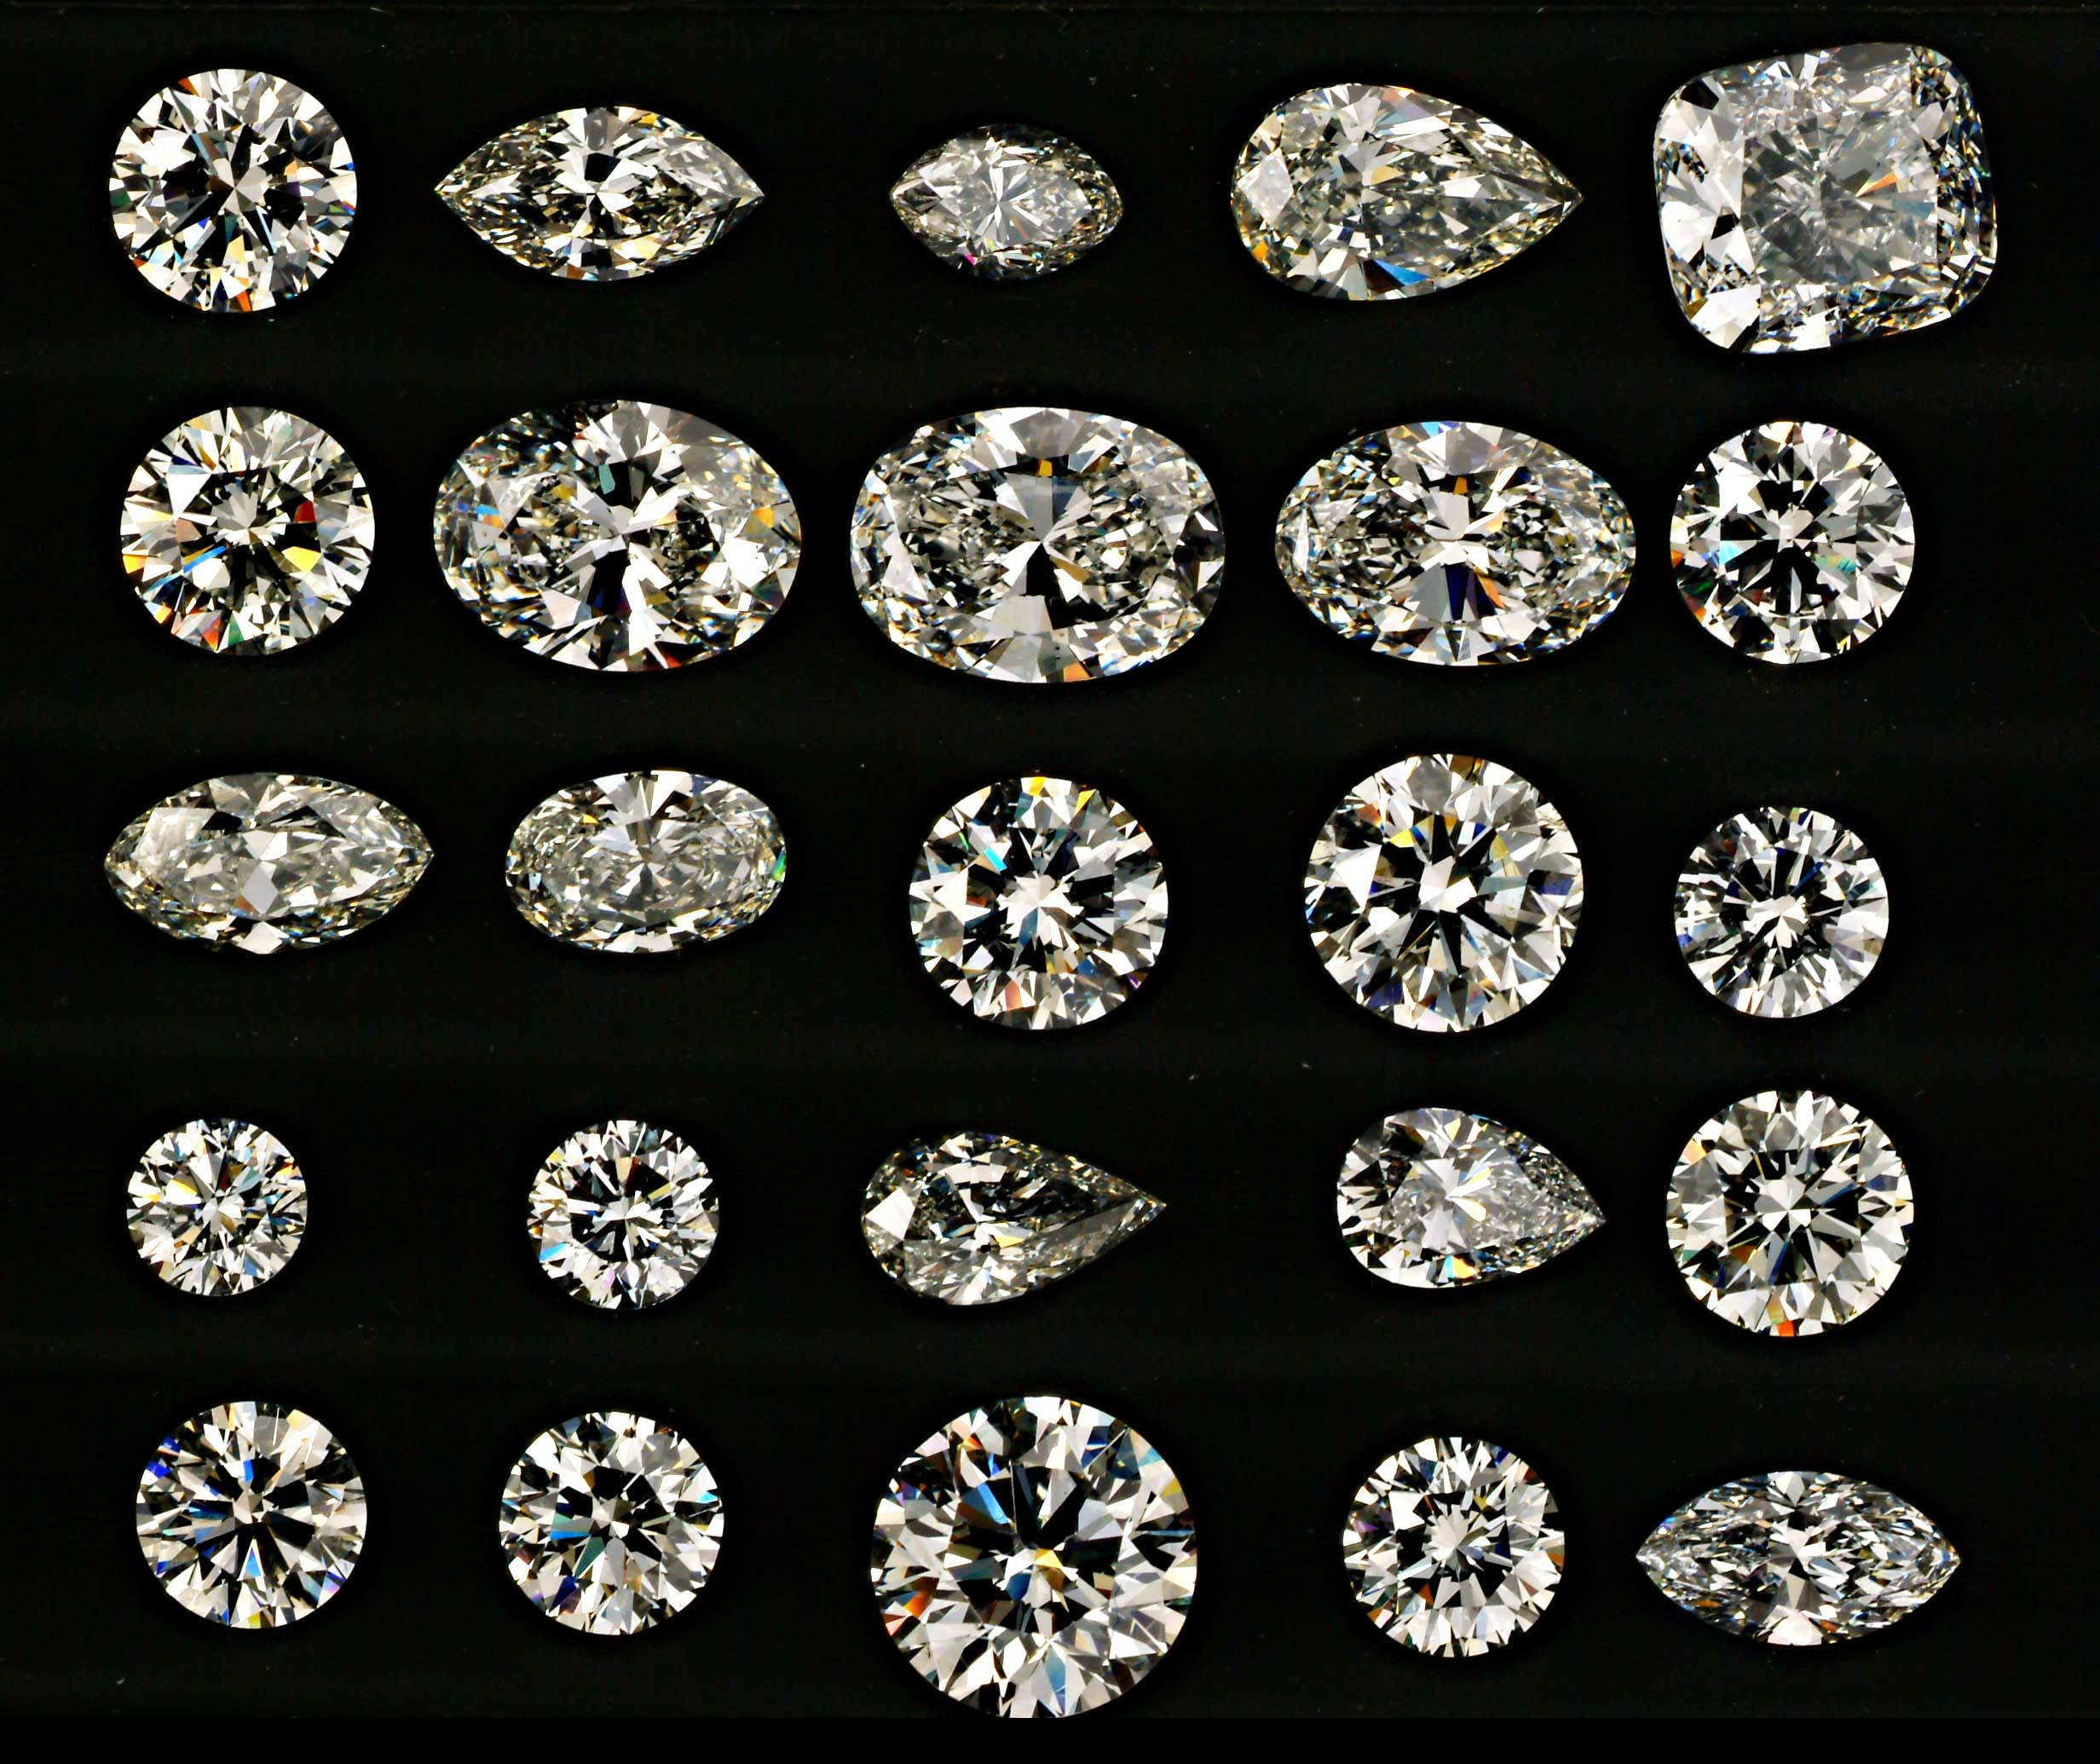 gem multi delhi identification institute diamond jewellery course fluorescence dgl grading dgic fancy